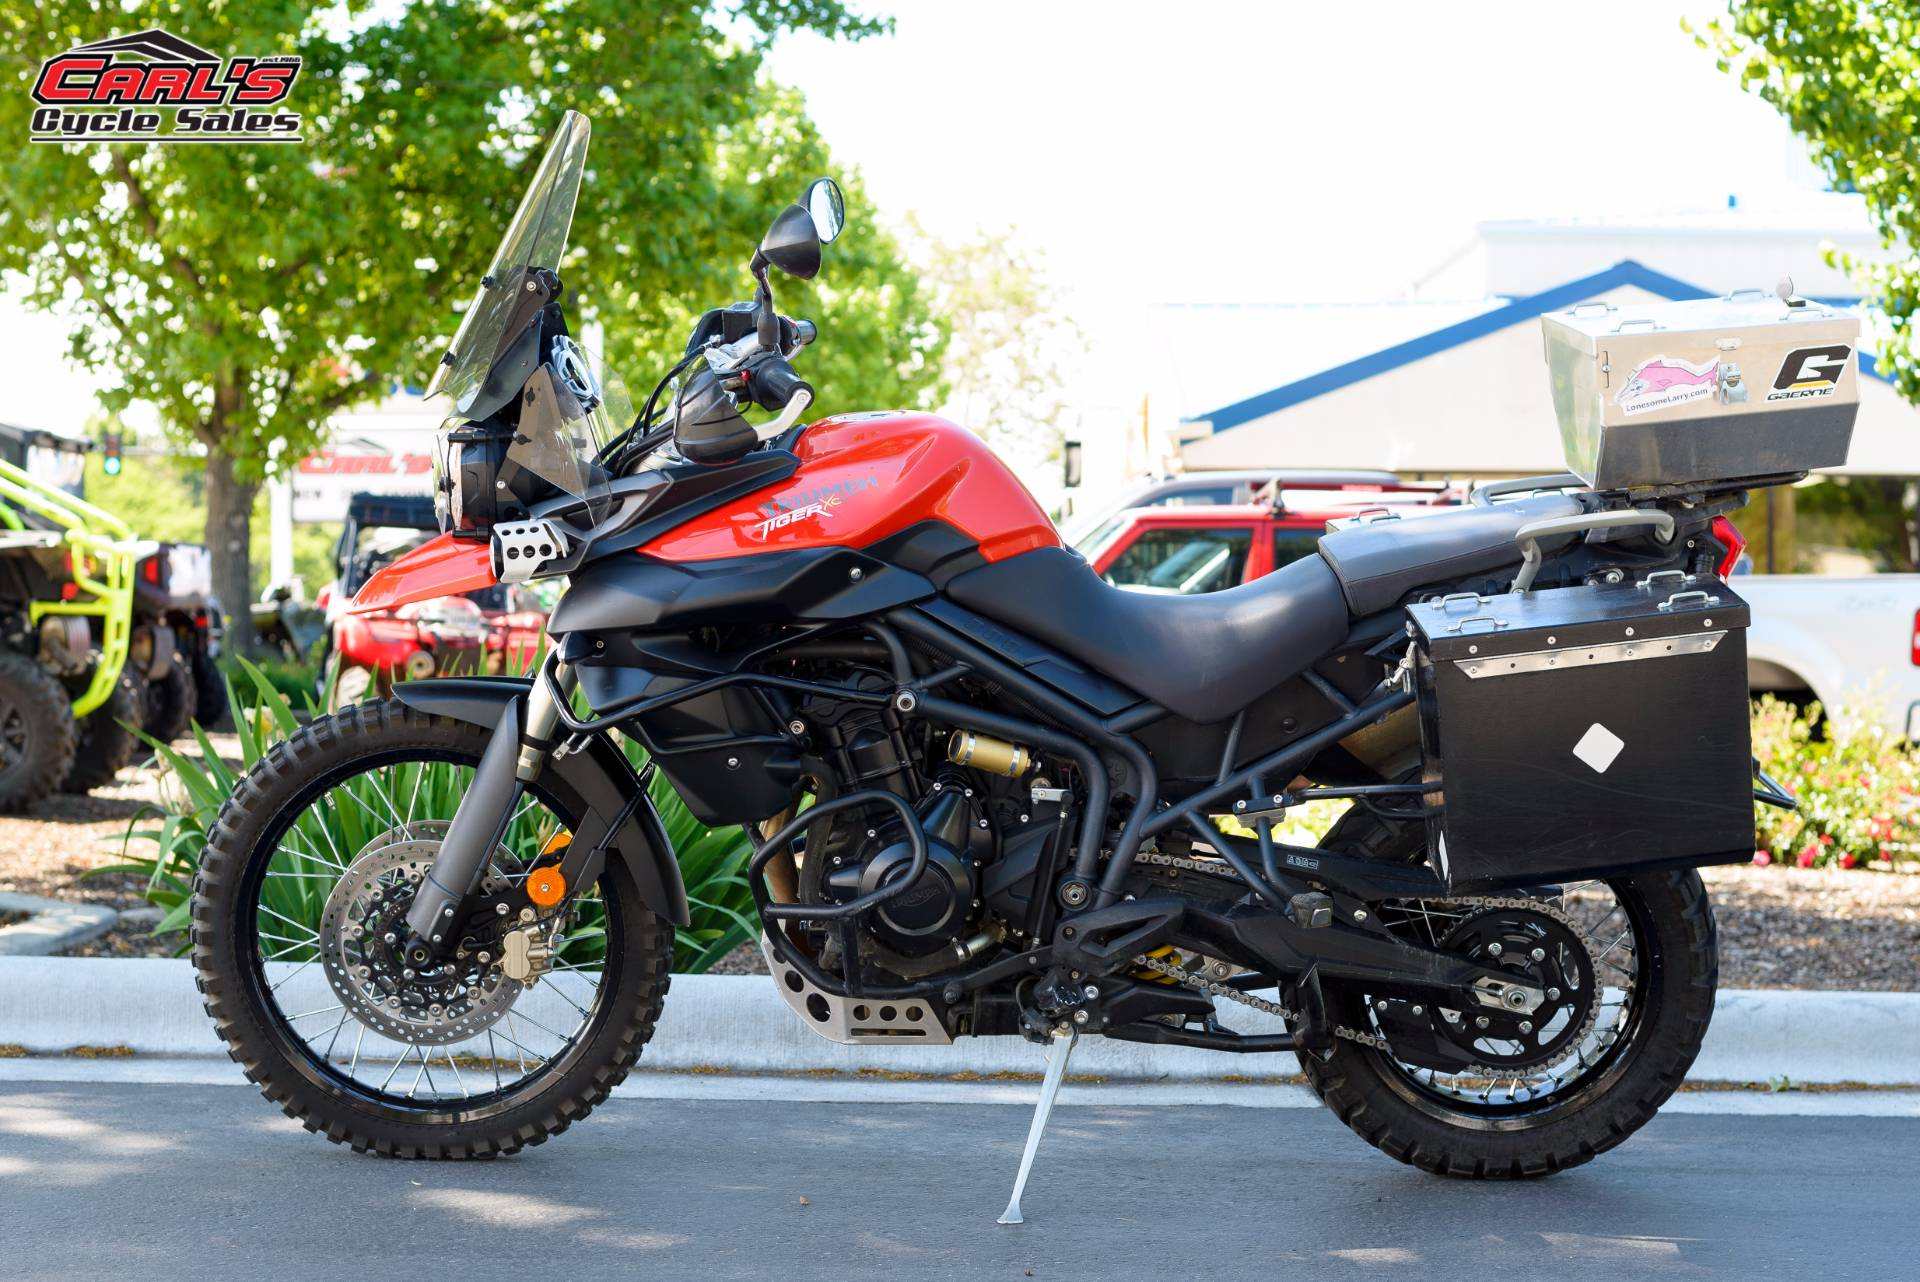 2012 Tiger 800 XC ABS